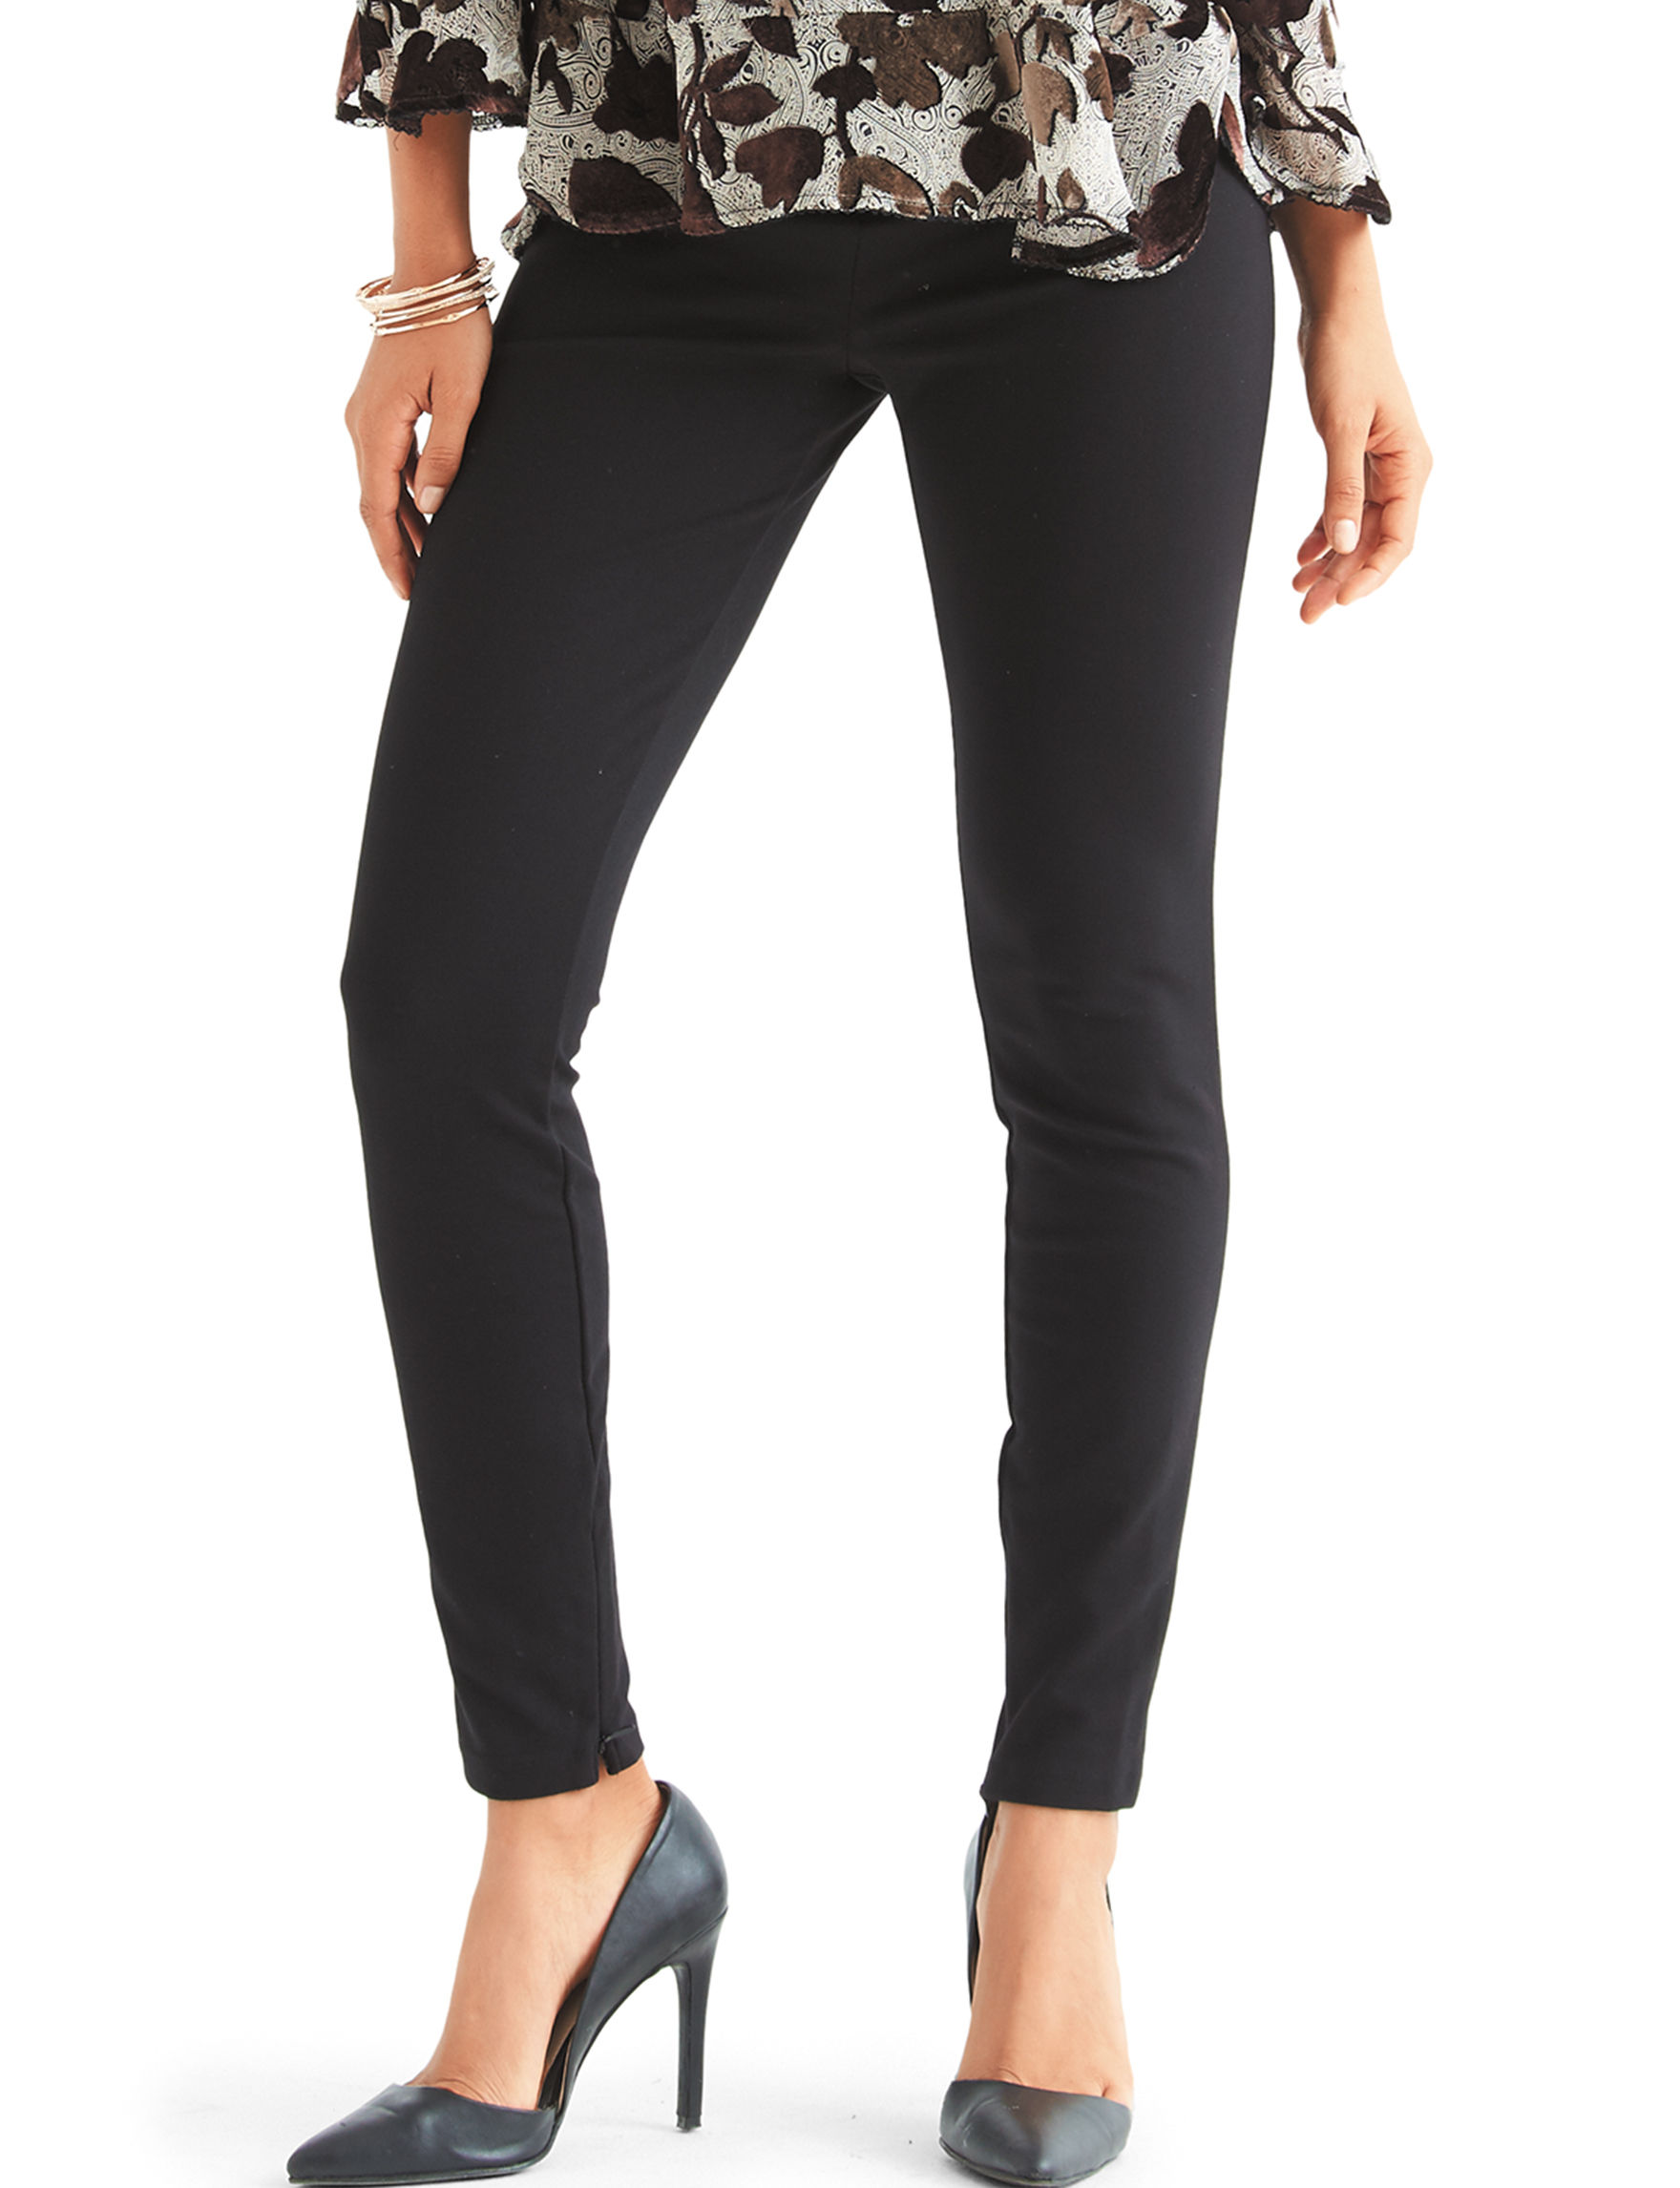 Chaus Black Leggings